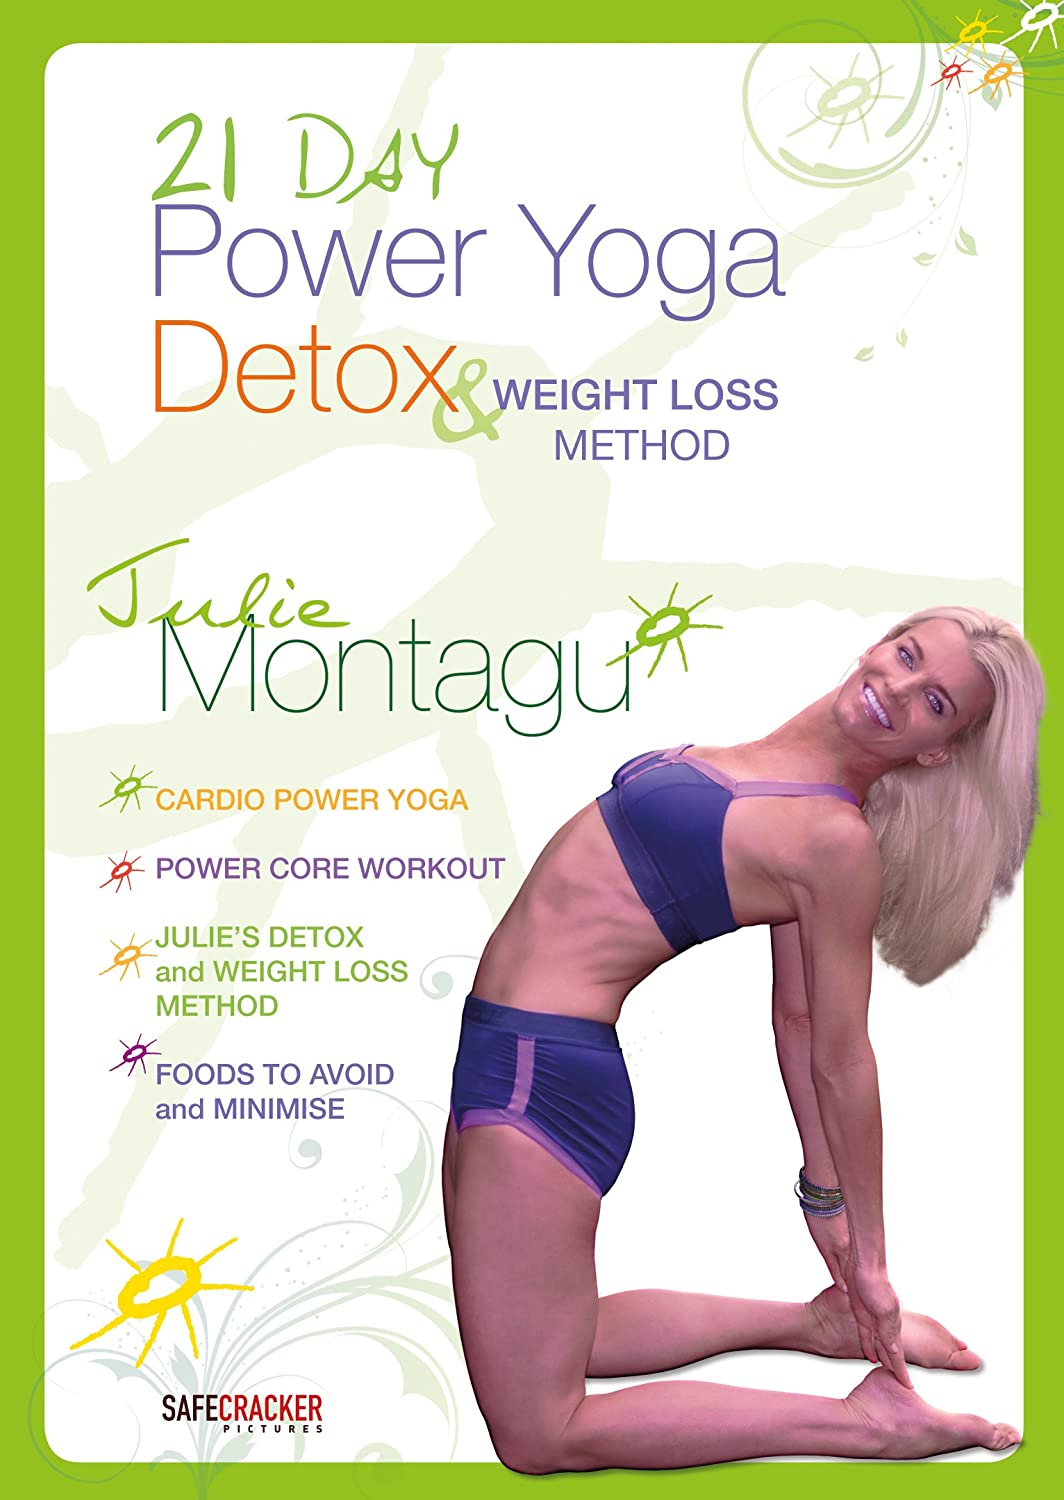 21 Day Power Yoga Detox & Weight Loss Method with Julie ...